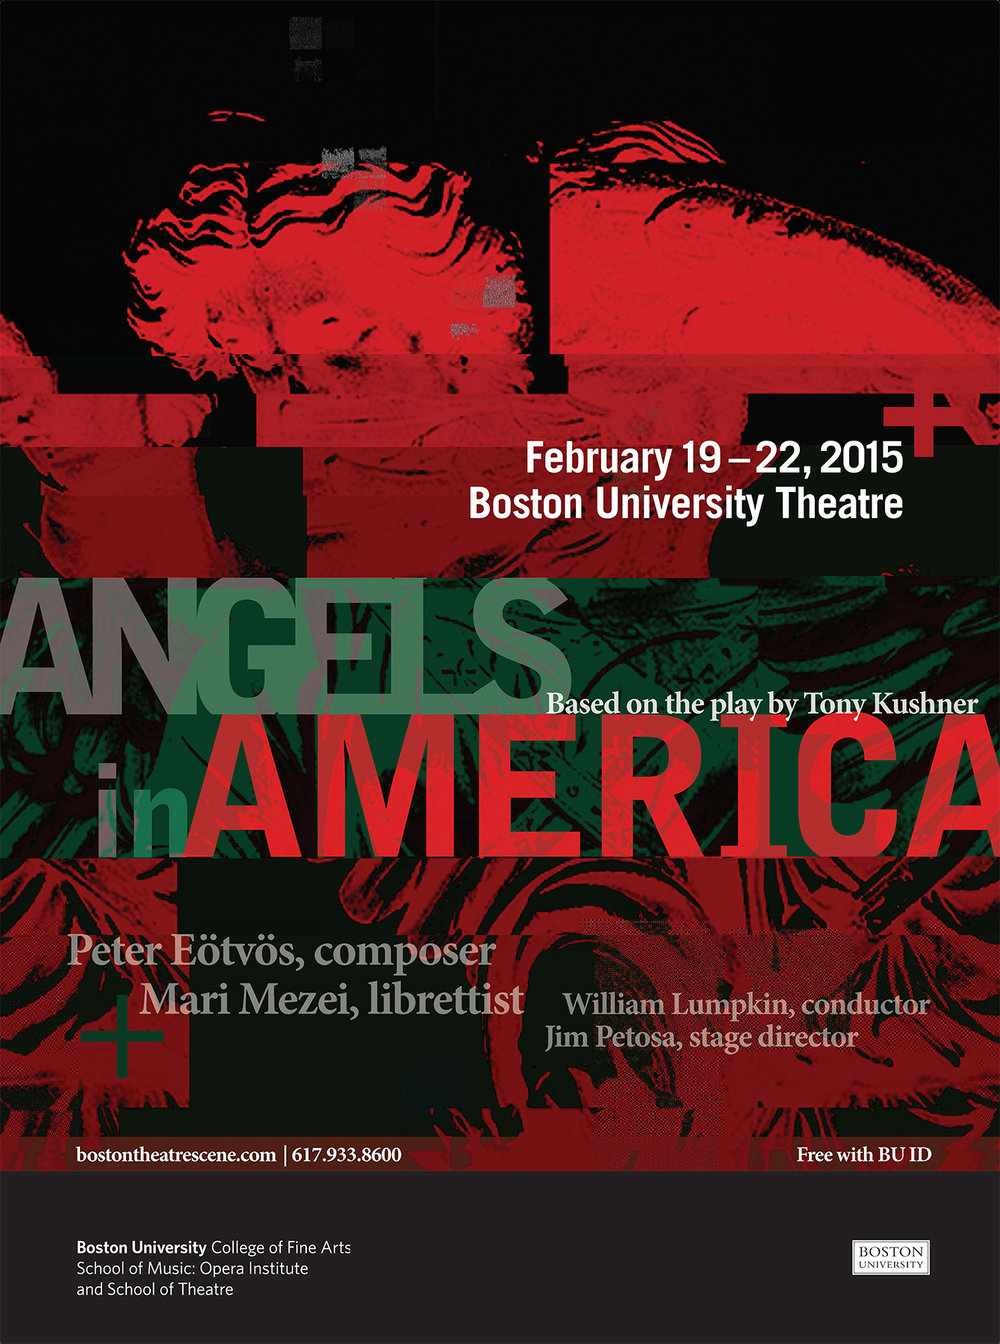 Angels-in-America-52x70.jpg